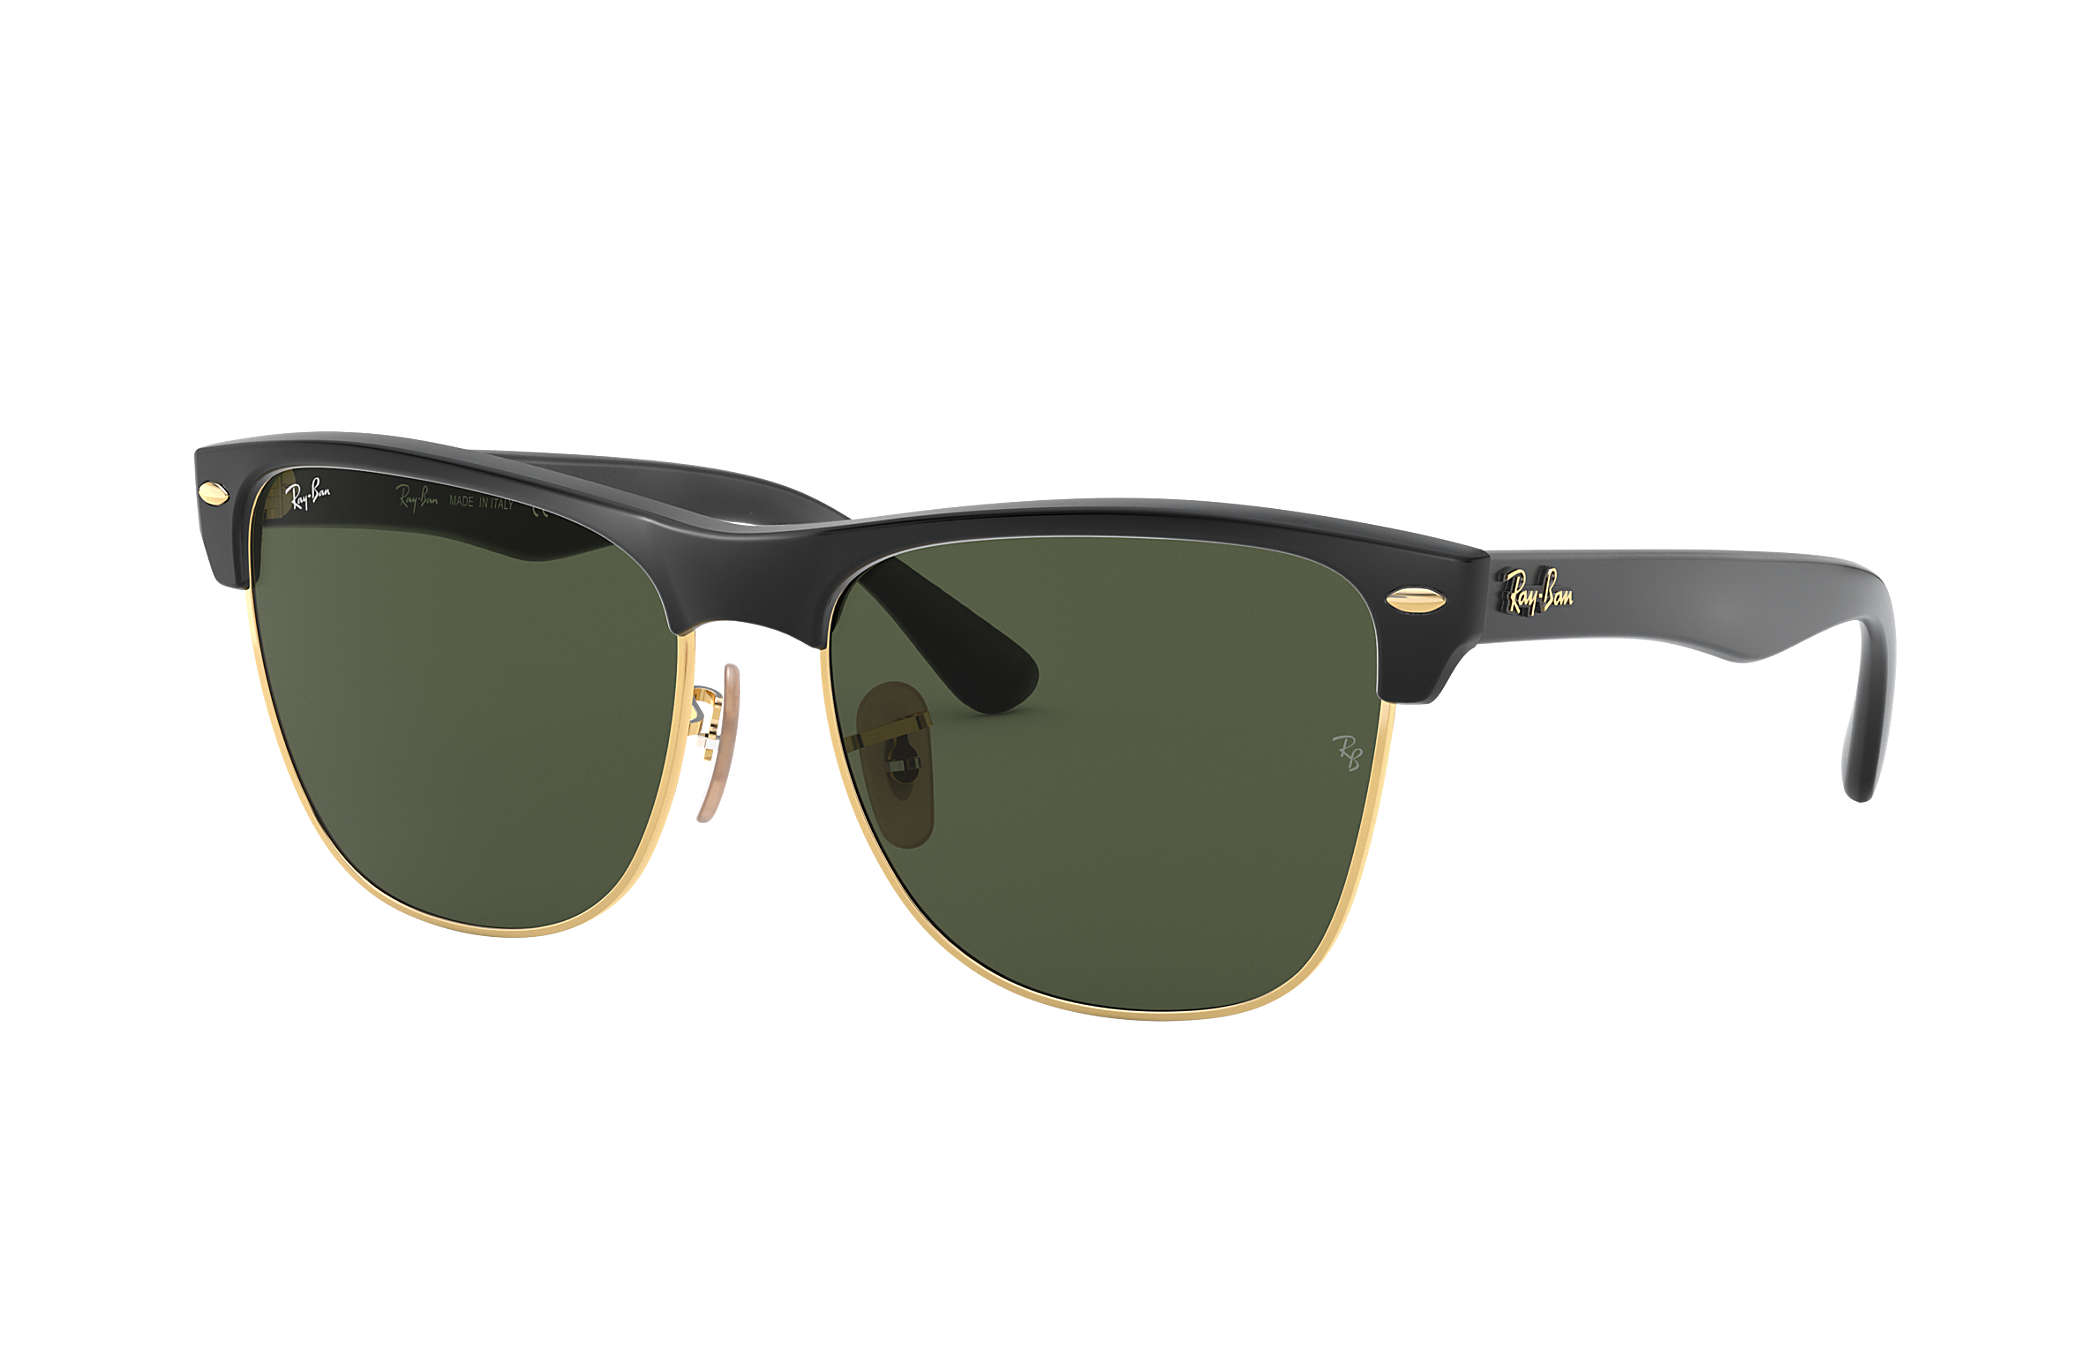 a1507a5929 Ray-Ban Clubmaster Folding RB2176 Black - Acetate - Green Lenses ...